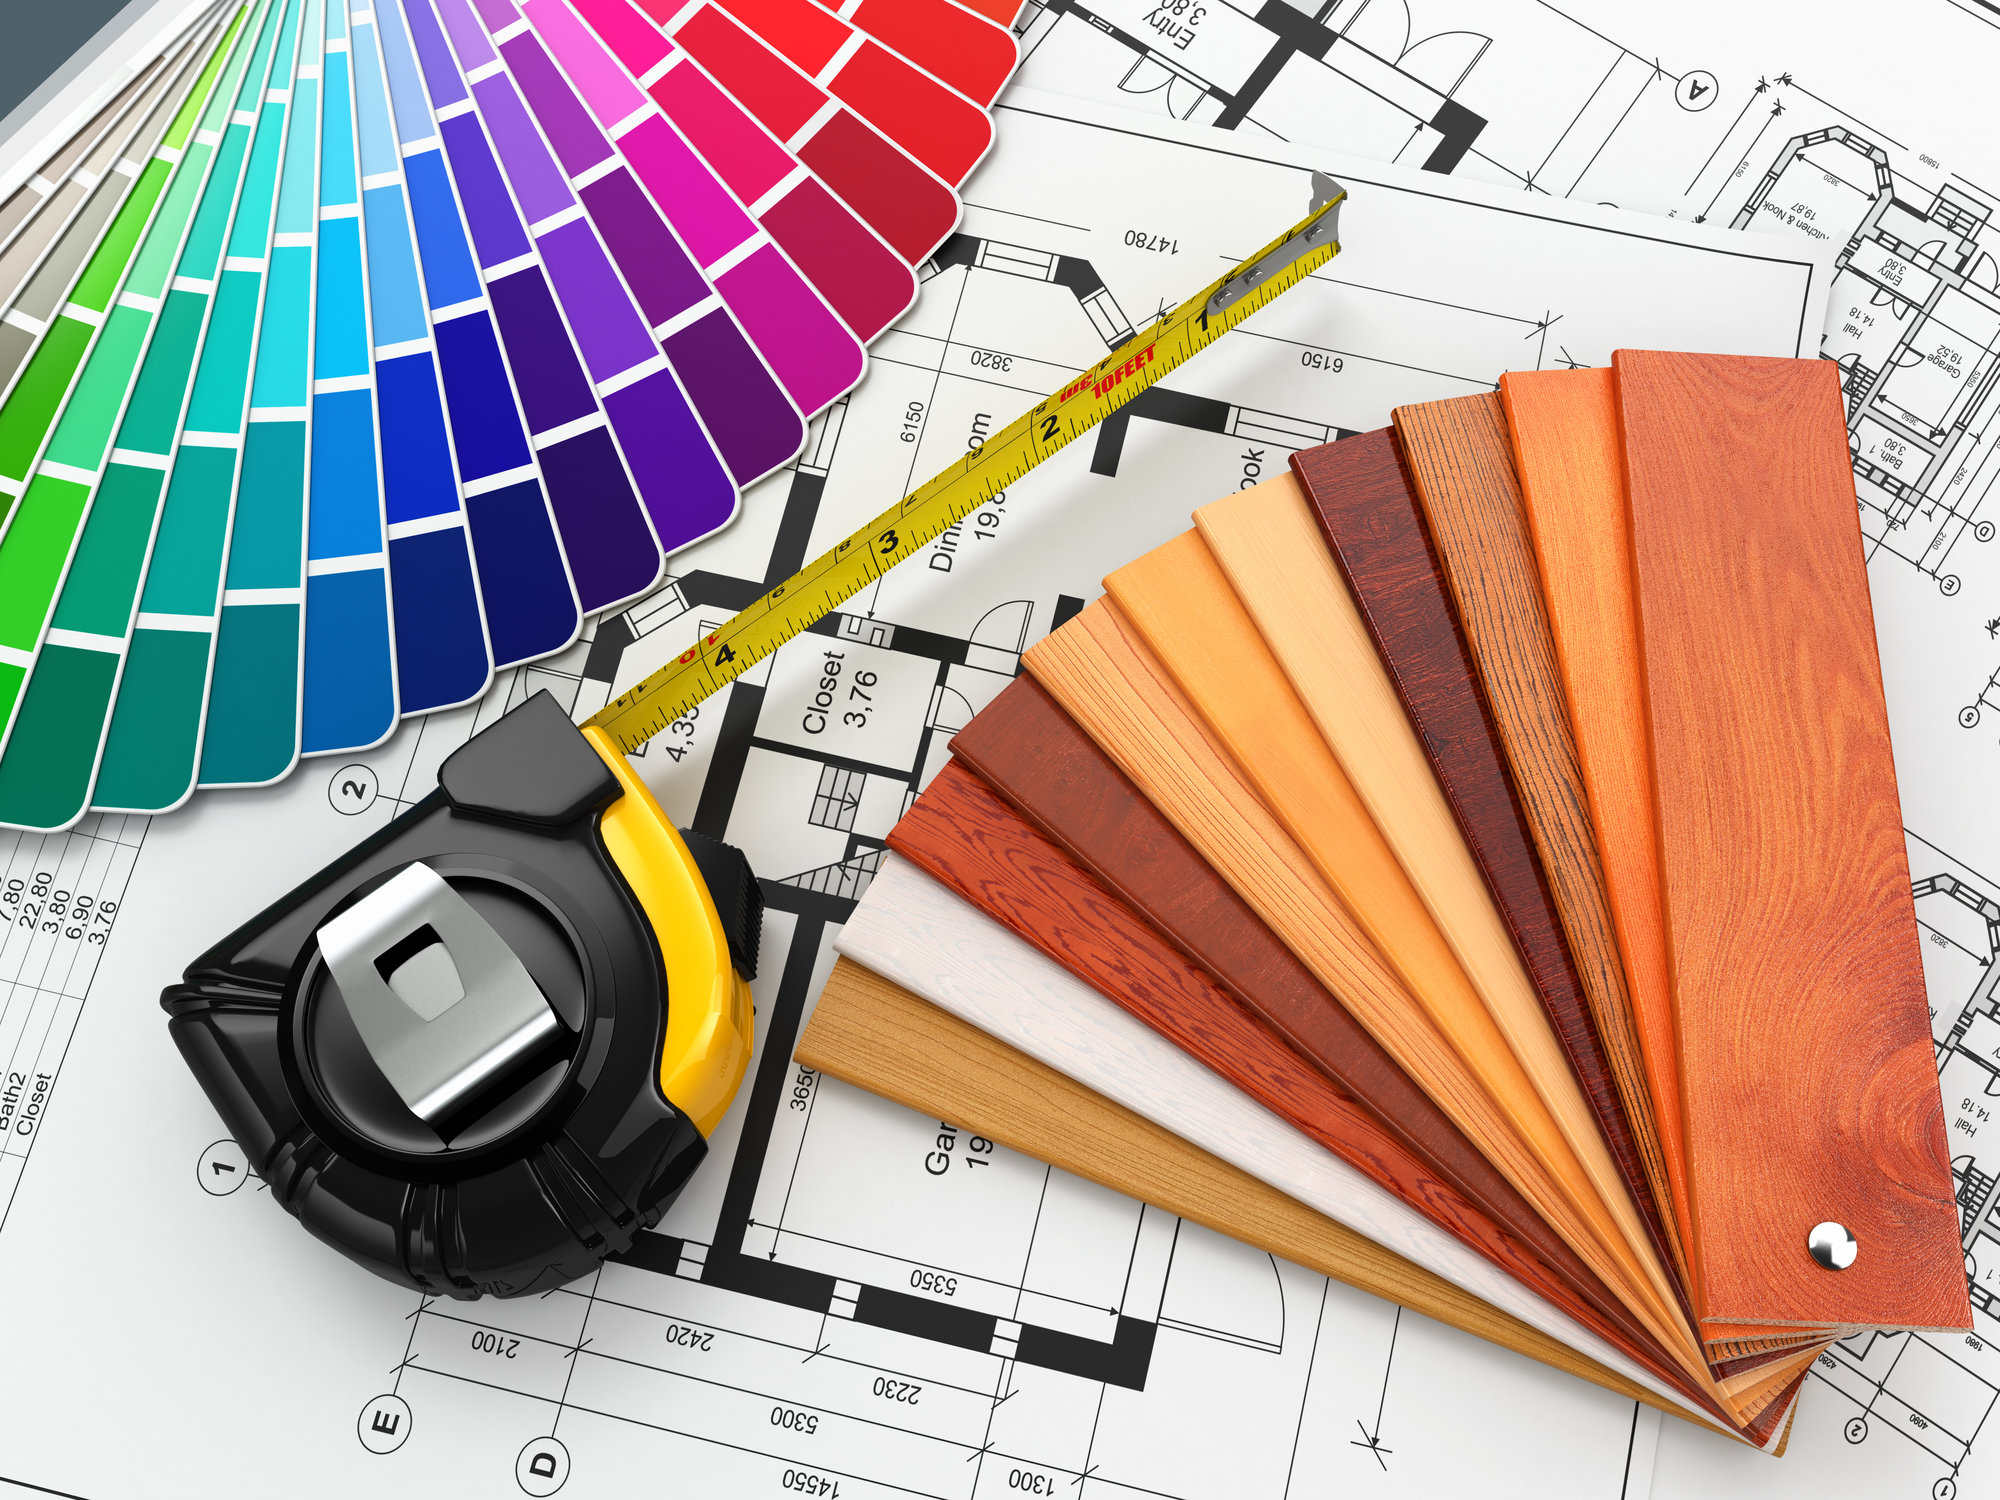 COVID 19 TIPS FOR HOME IMPROVEMENT